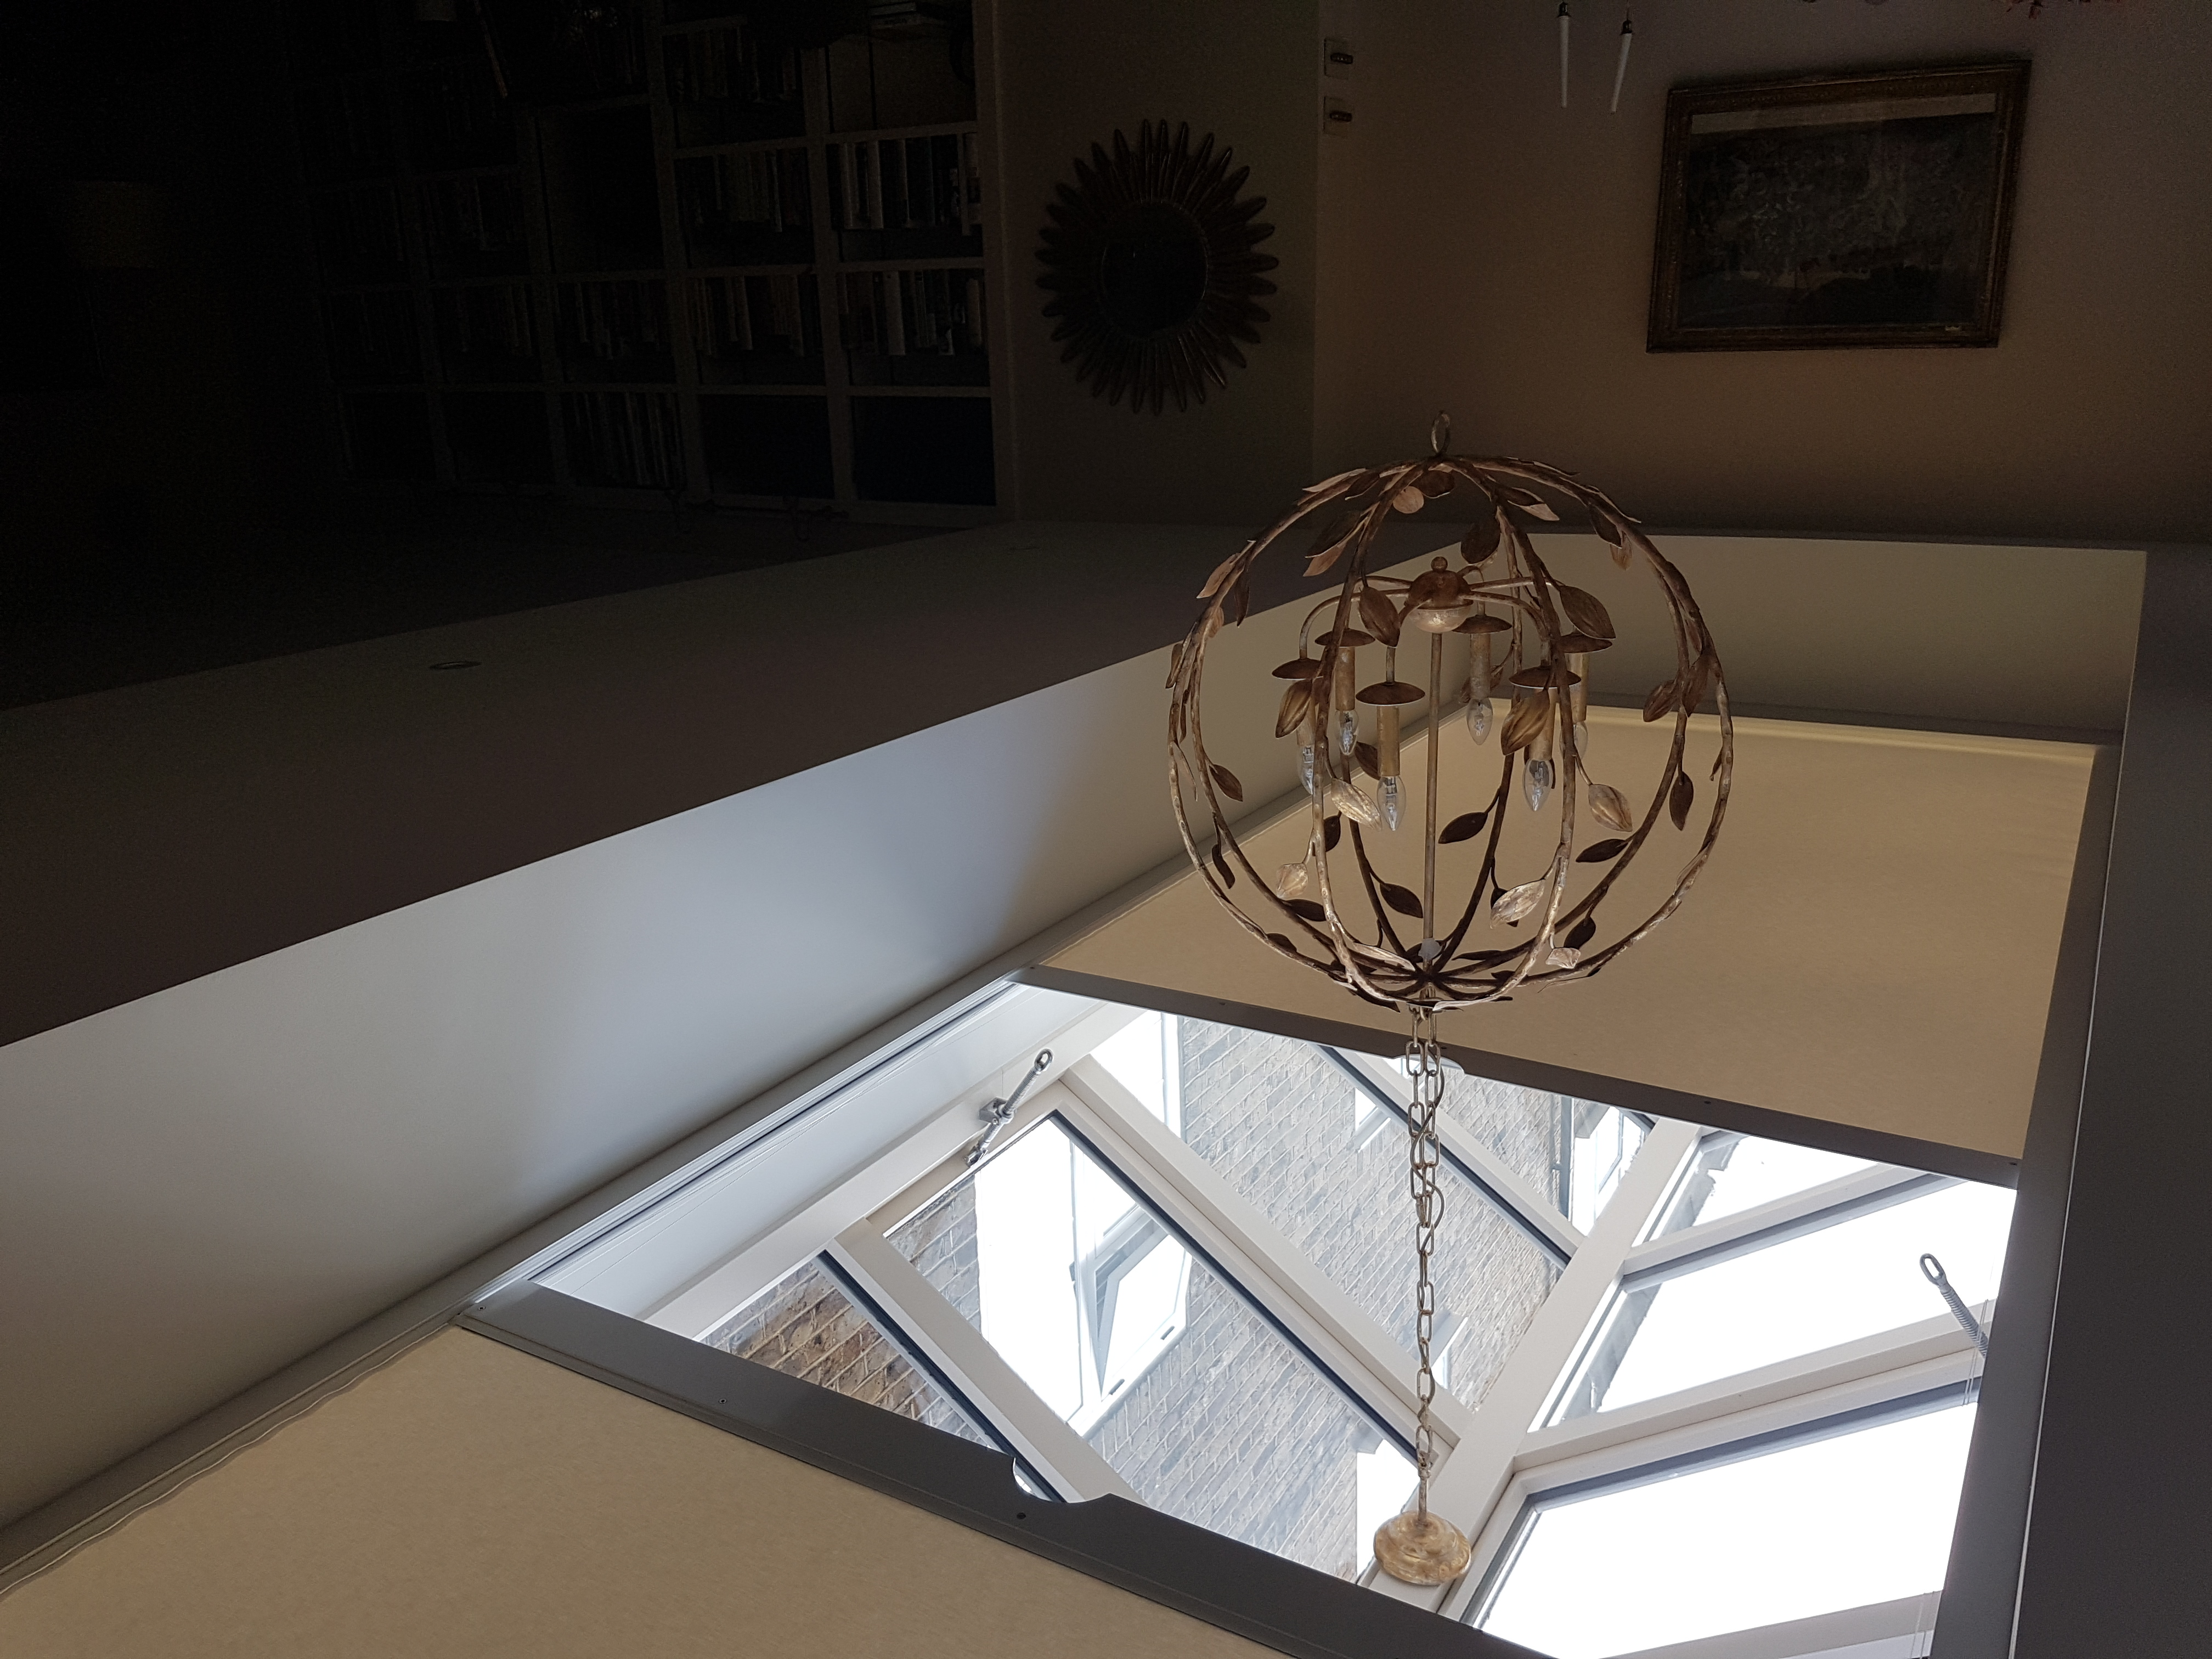 Lard roof lantern blinds that meet in the middle